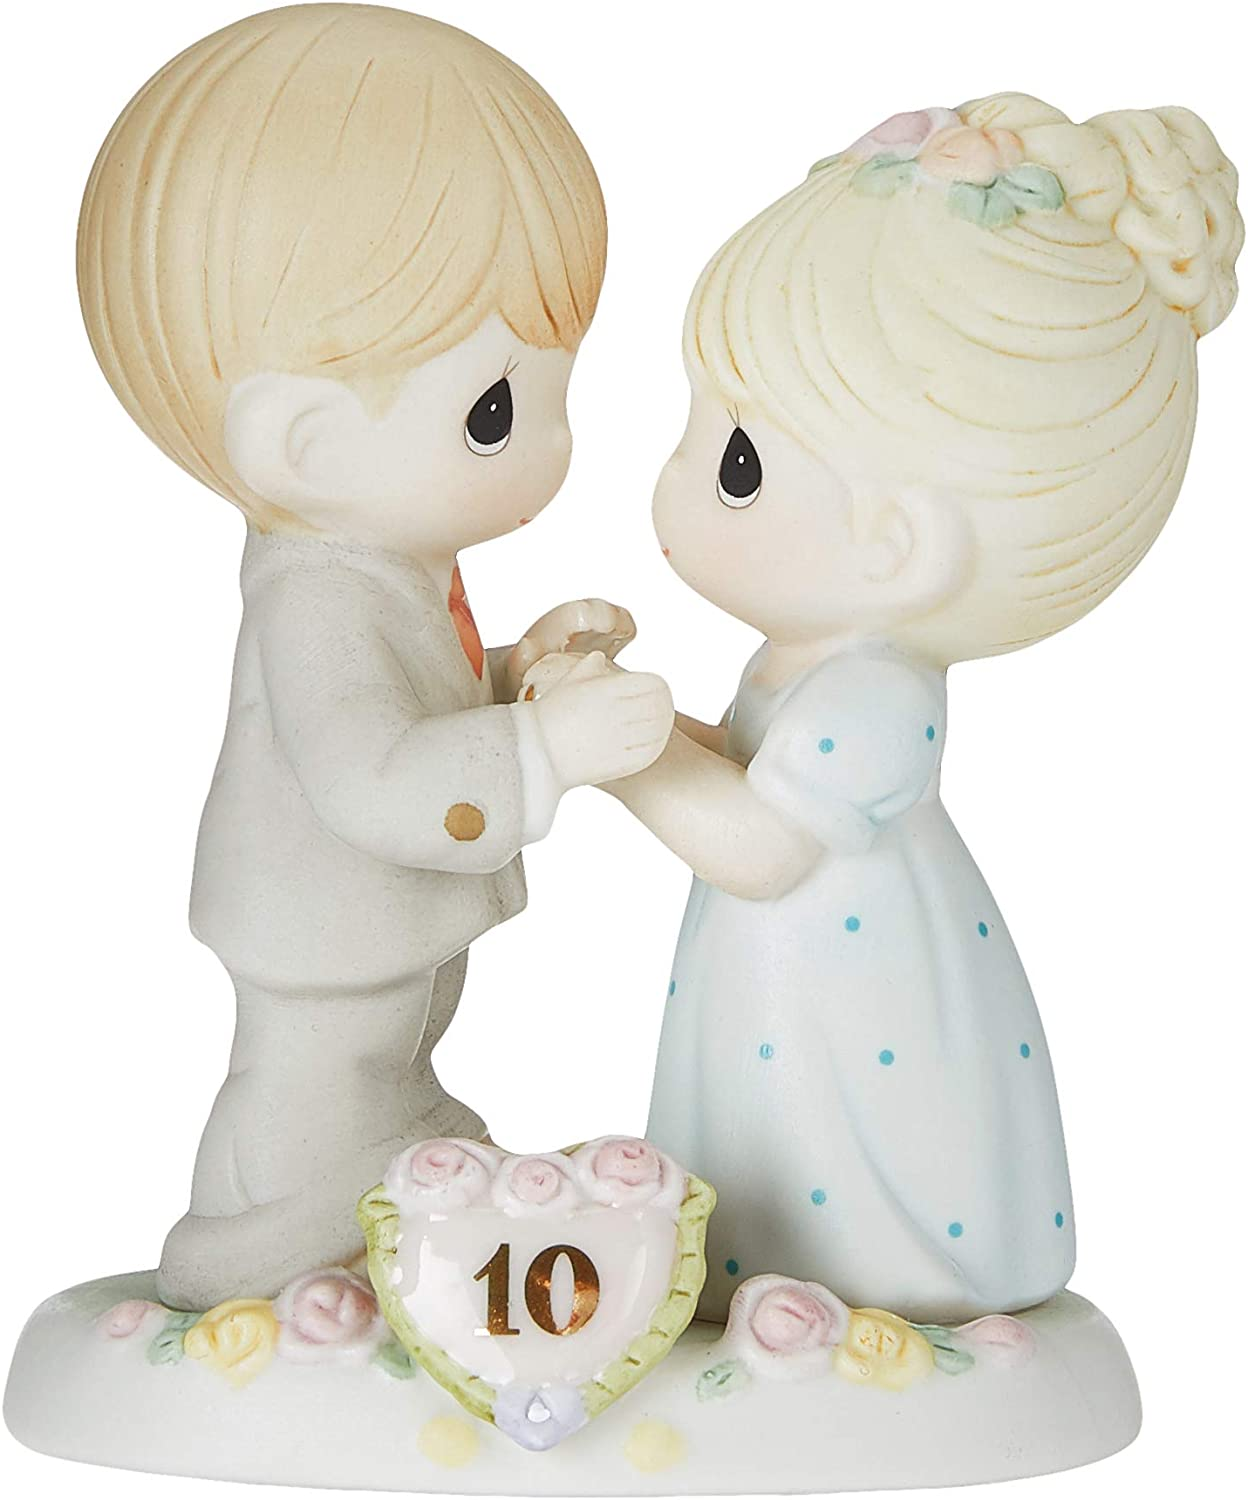 Precious Moments Figurines Assorted lot of 100 Pieces No Boxes New Pics $10 Each